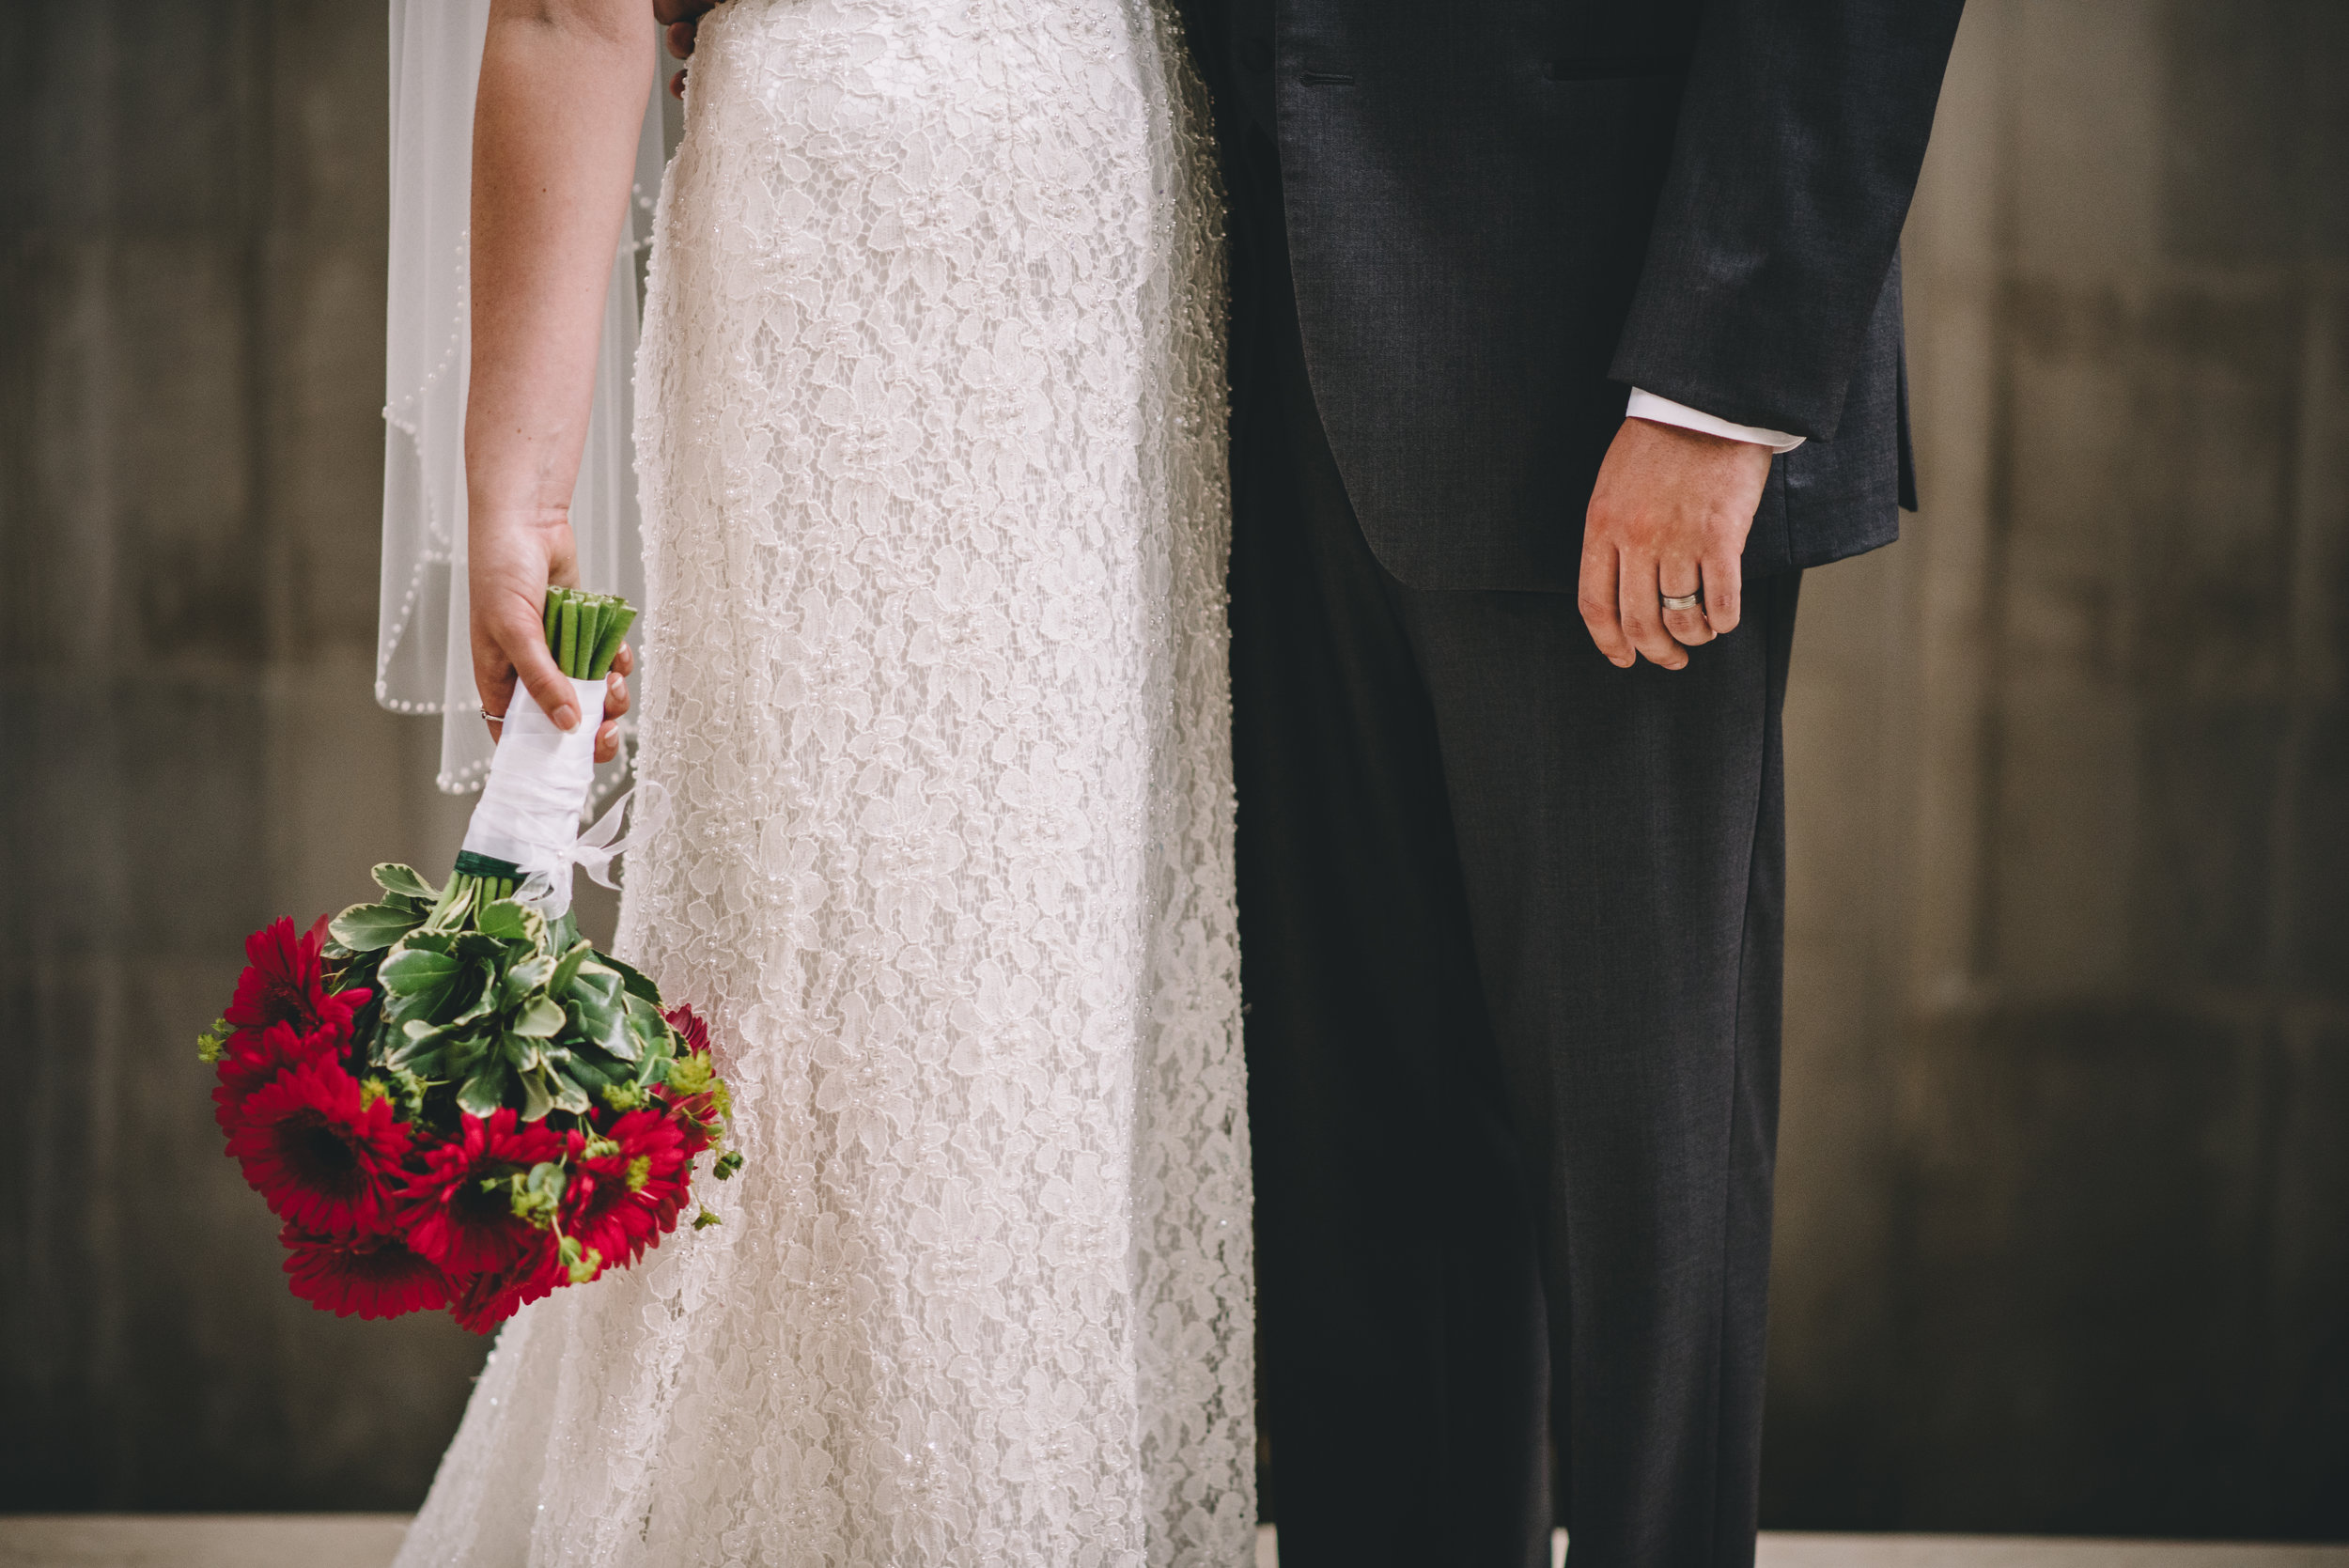 Bride and Groom  The Mount Community Centre Peterborough, Ontario Mocha Tree Studios Ottawa Wedding and Engagement Photographer and Videographer Dark Moody Intimate Authentic Modern Romantic Cinematic Best Candid ALEX + BRIAN: THE MOUNT, PETERBOROUGH, ON